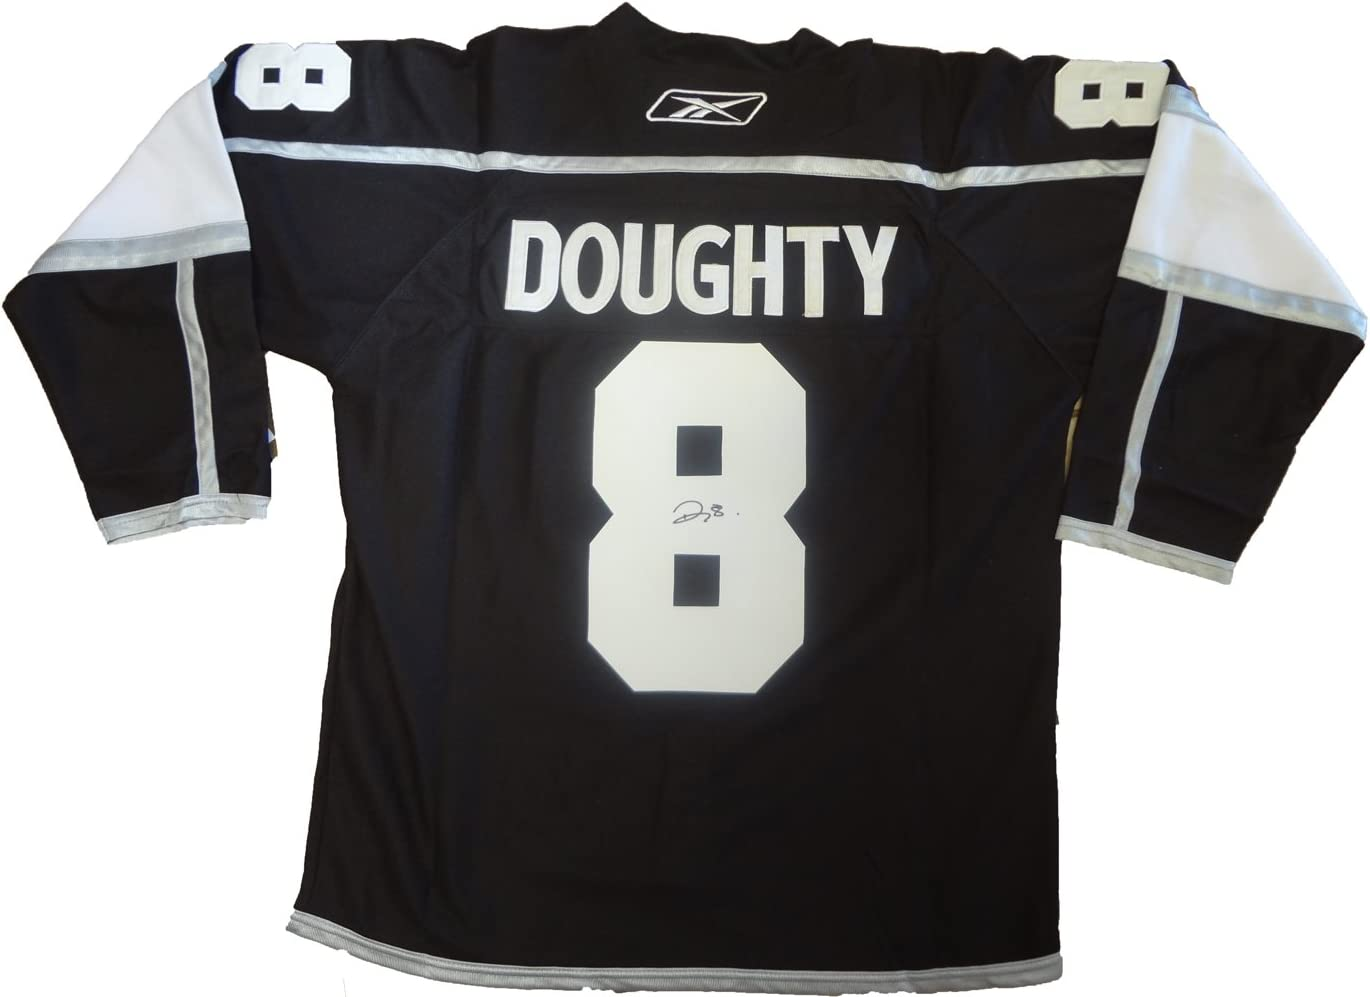 B0088IM658 Drew Doughty Autographed Los Angeles Kings Black Jersey W/PROOF, Picture of Drew Signing For Us, Los Angeles Kings, 2012 Stanley Cup, Team Canada, Gold Medal 61XnK-waxSL.SL1382_